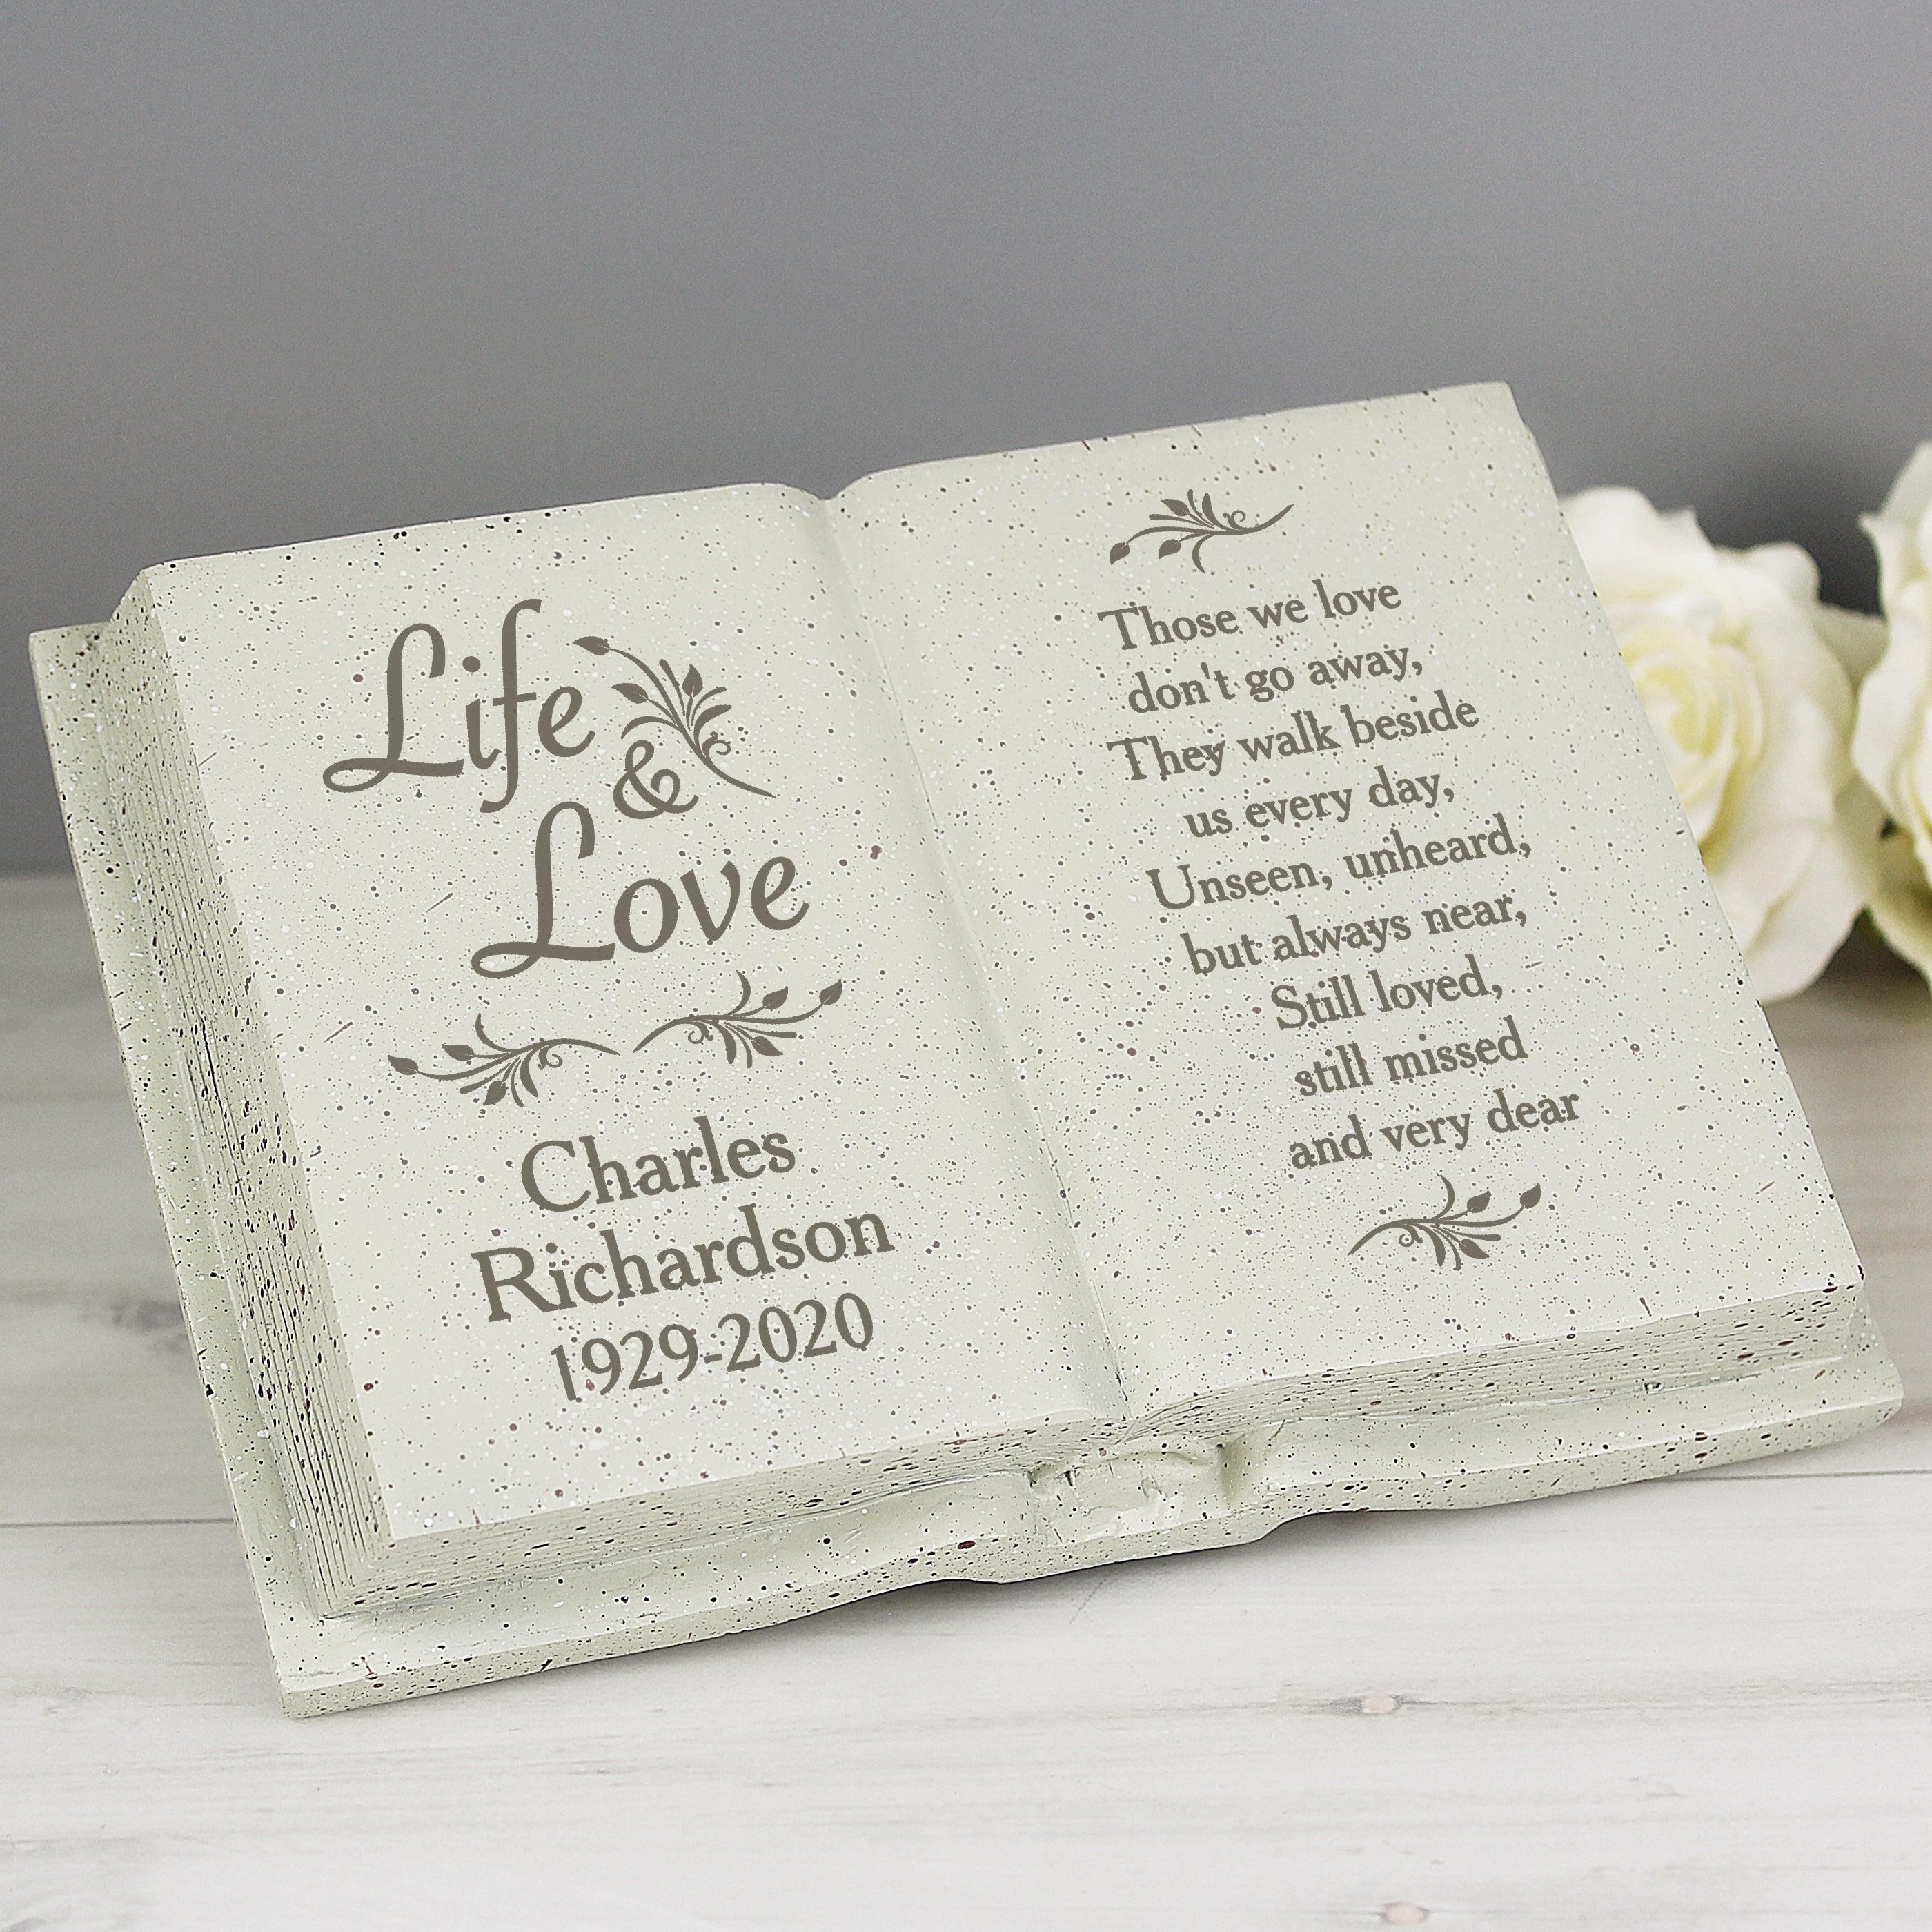 Personalised Life & Love Resin Memorial Book